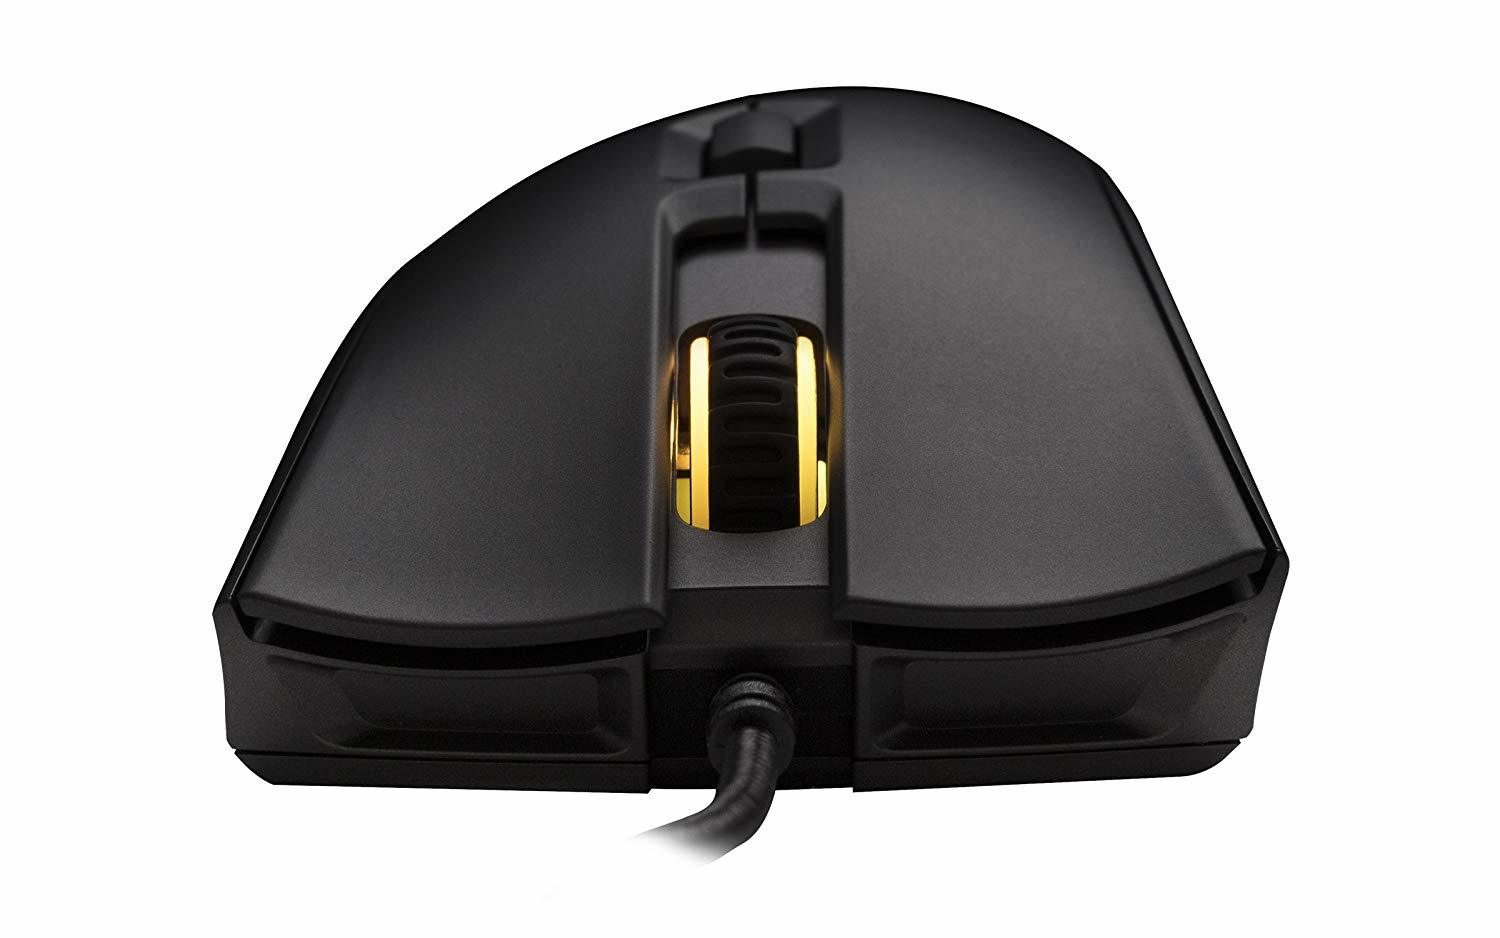 HyperX Pulsefire FPS Pro RGB Gaming Mouse - PC Games